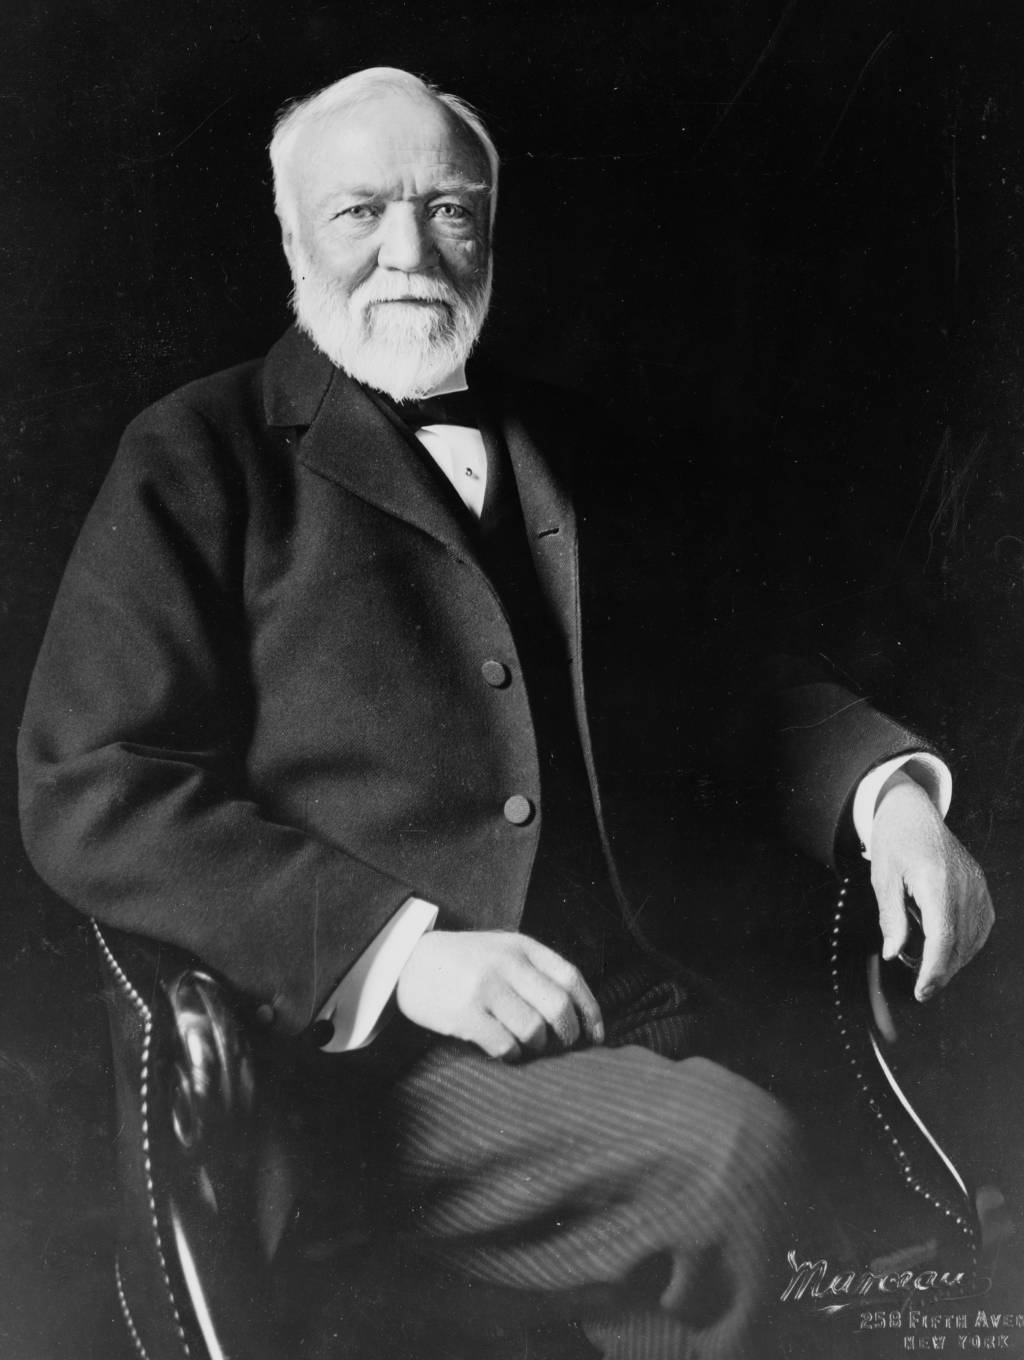 Businessman Essay At The Time Of Need Walker Funeral Home Uzocjc  Where Nineteenth Century Entrepreneurs Robber Barons Writework Andrew  Carnegie American Businessman And Philanthropist